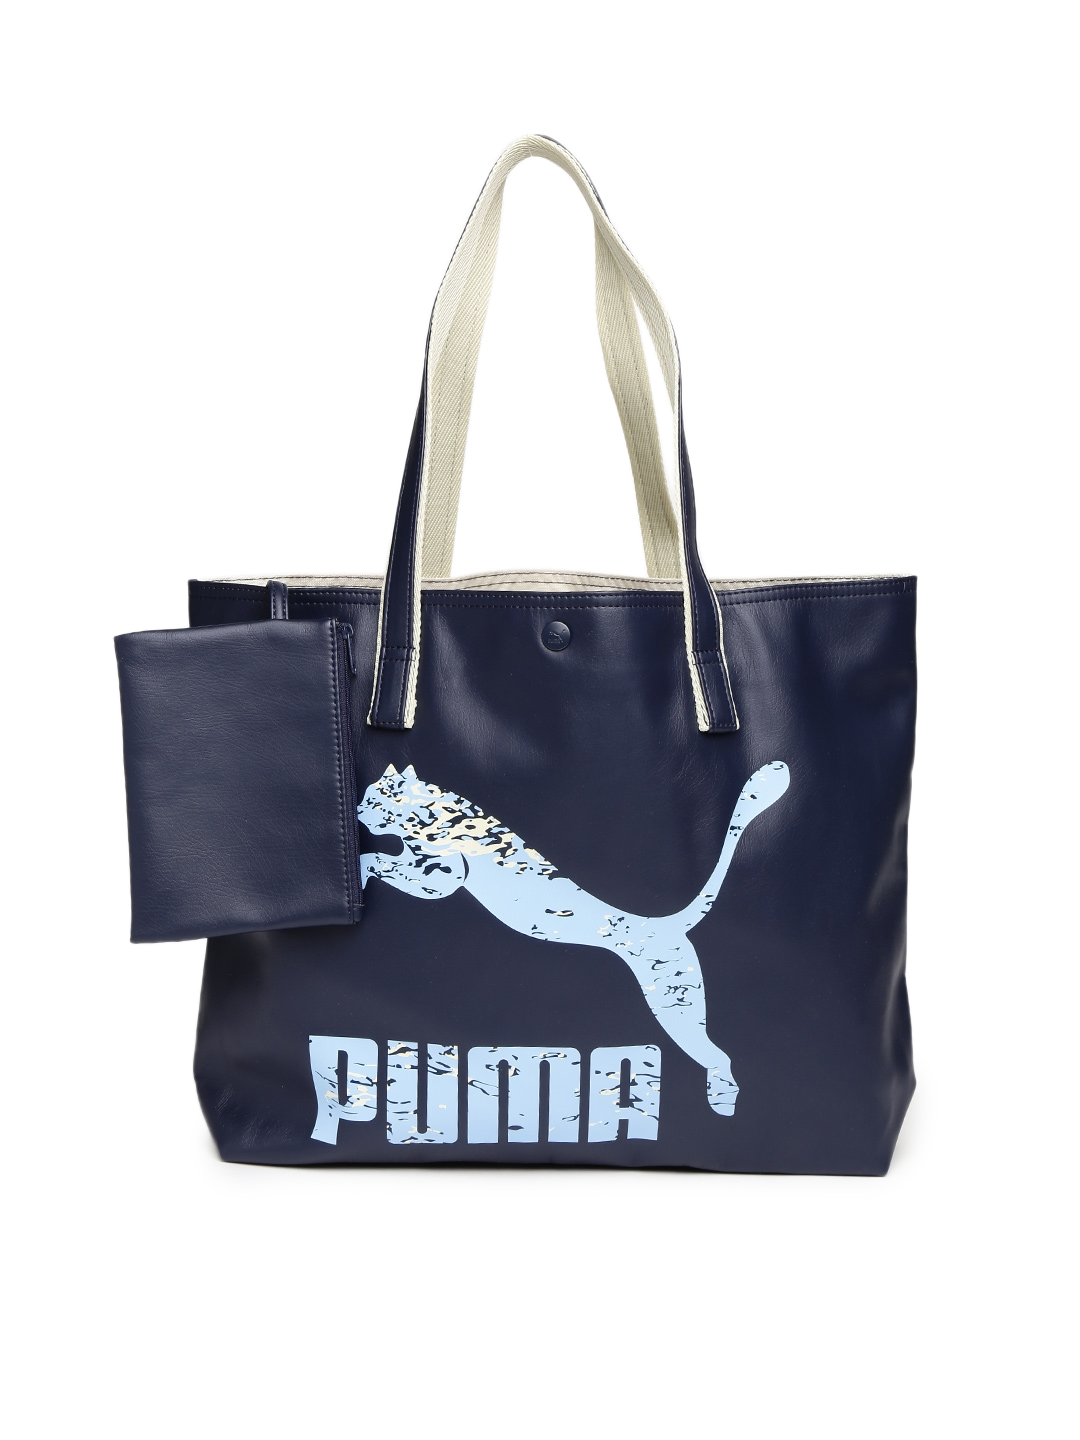 05bd10a1e746 Buy Puma Navy   Beige Archive Large Shopper F Printed Tote Bag - Handbags  for Women 1831701